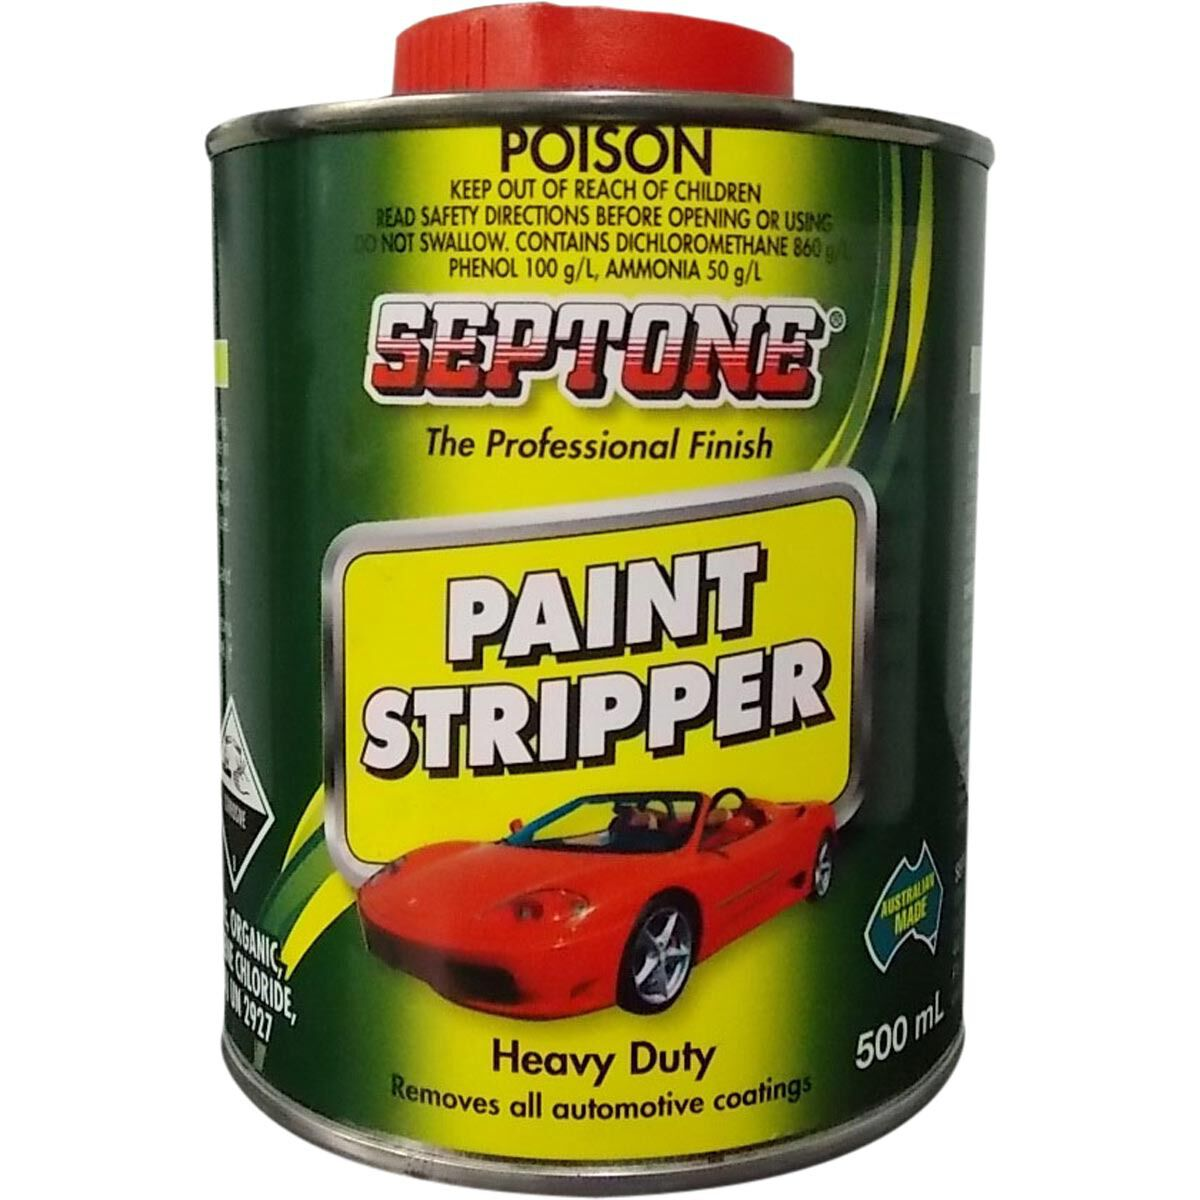 Paint Stripper Septone Paint Stripper 500ml